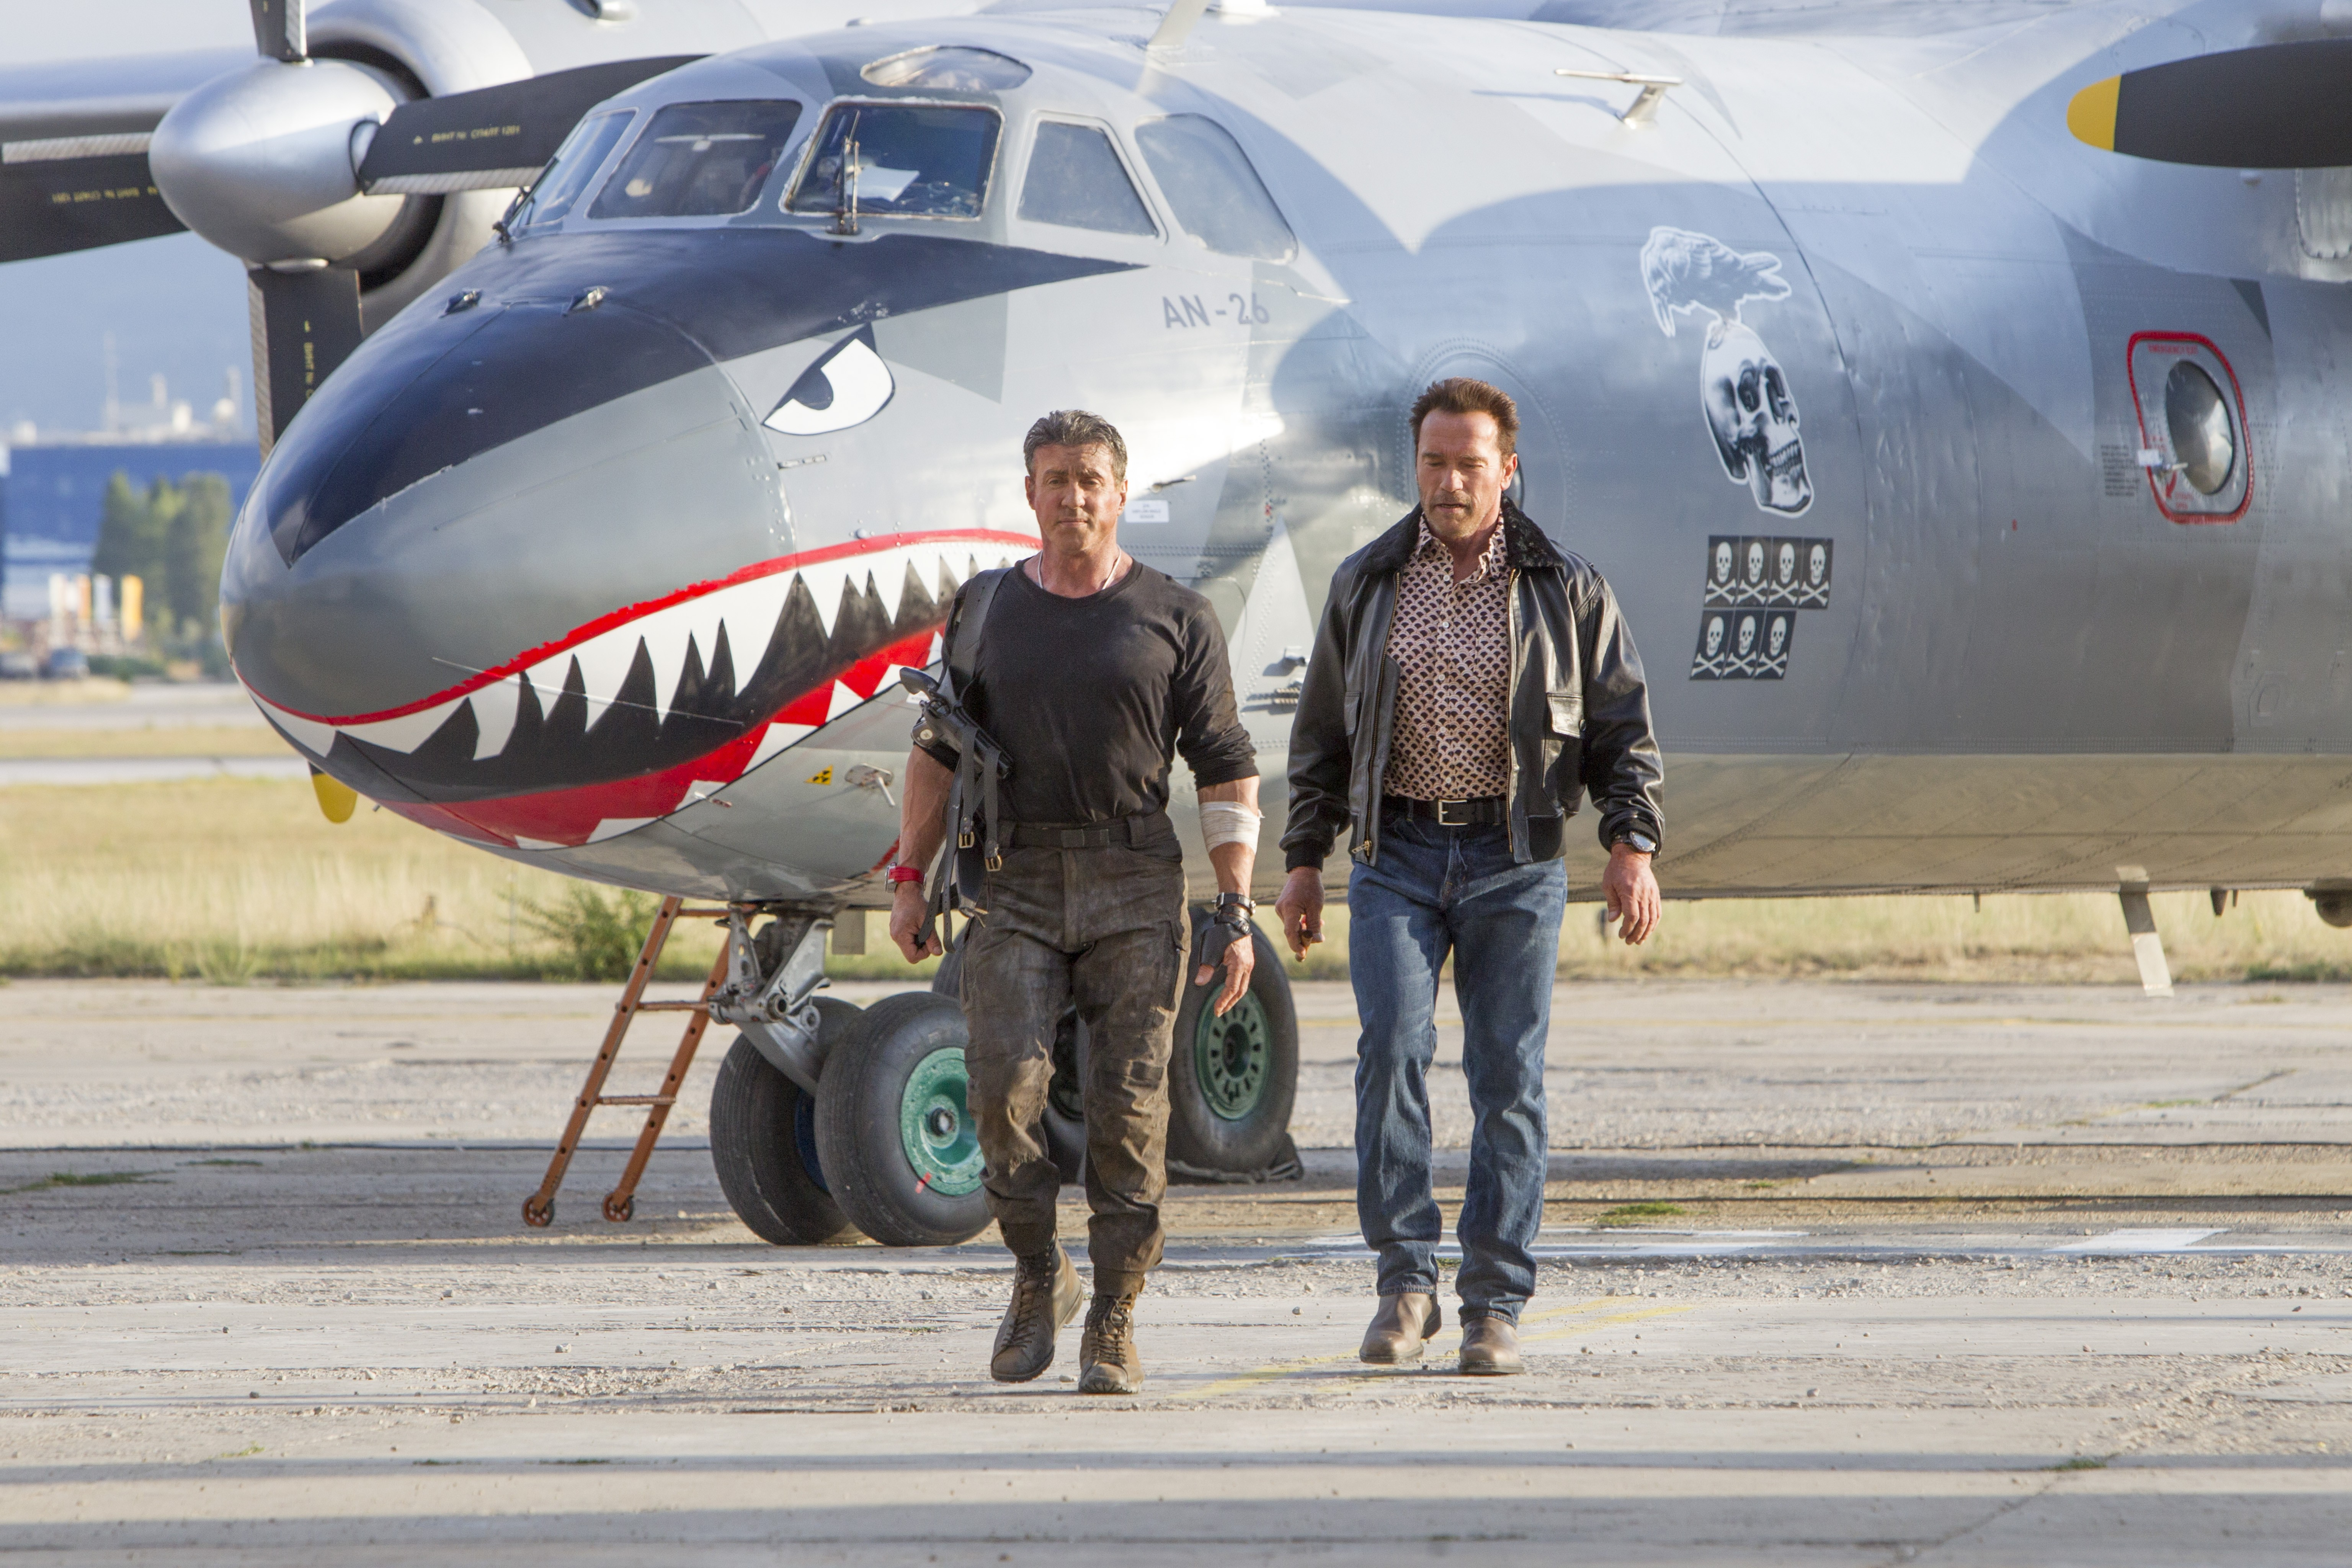 Sylvester Stallone In Expendables 2 Wallpapers: The Expendables 3 5k Retina Ultra HD Wallpaper And